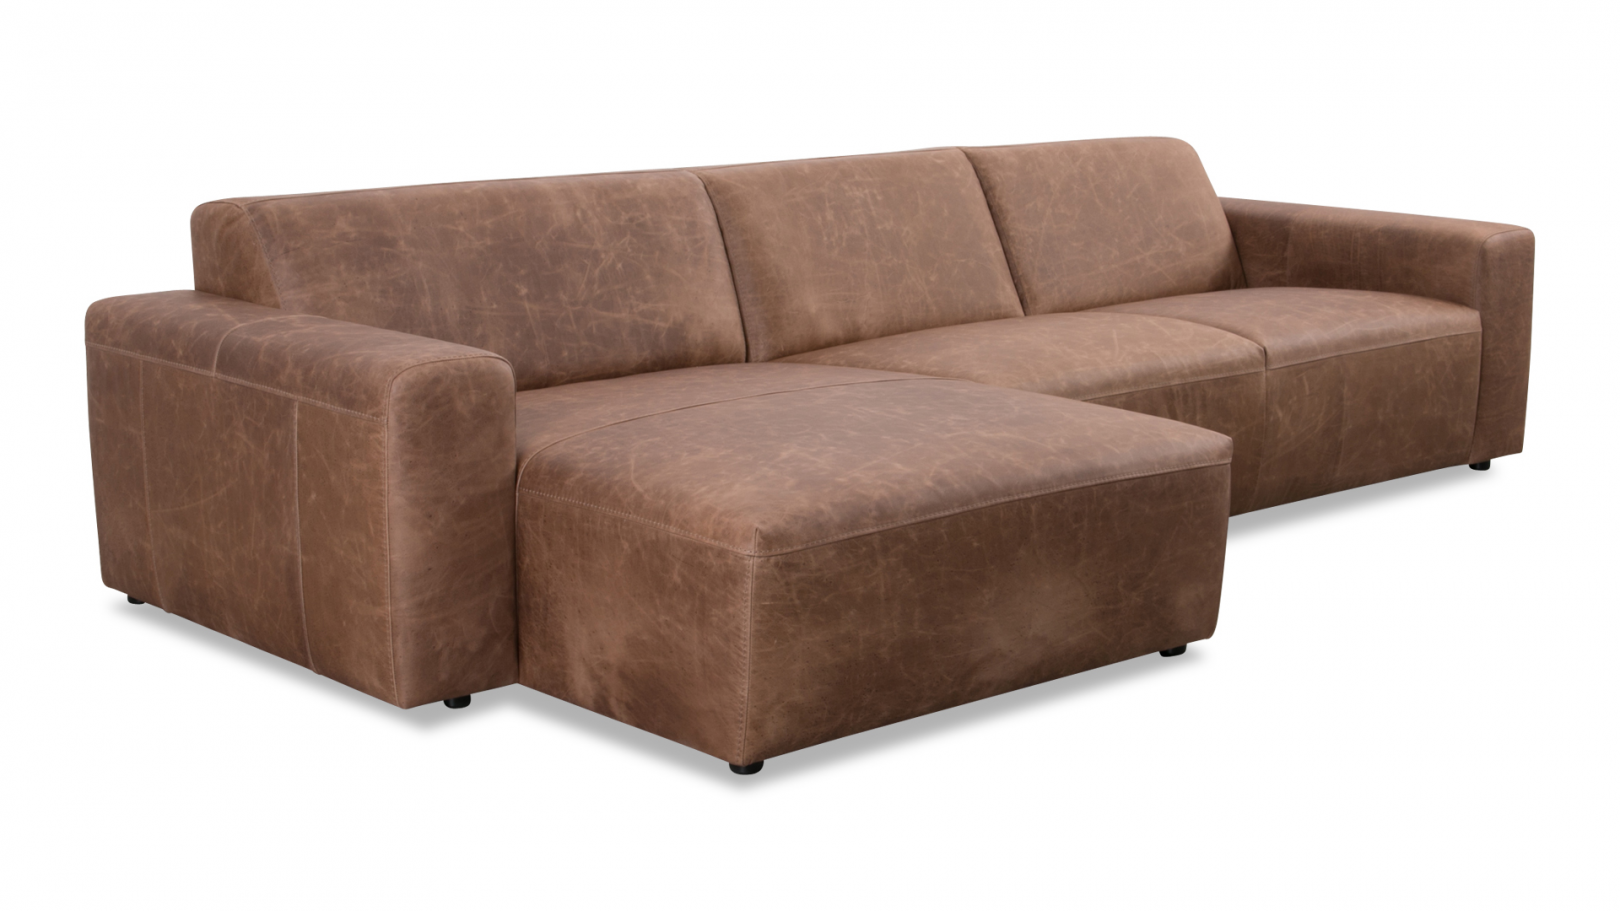 Sitzdesign Markenmobel In 2020 Sofa Outlet Sofa Neue Mobel